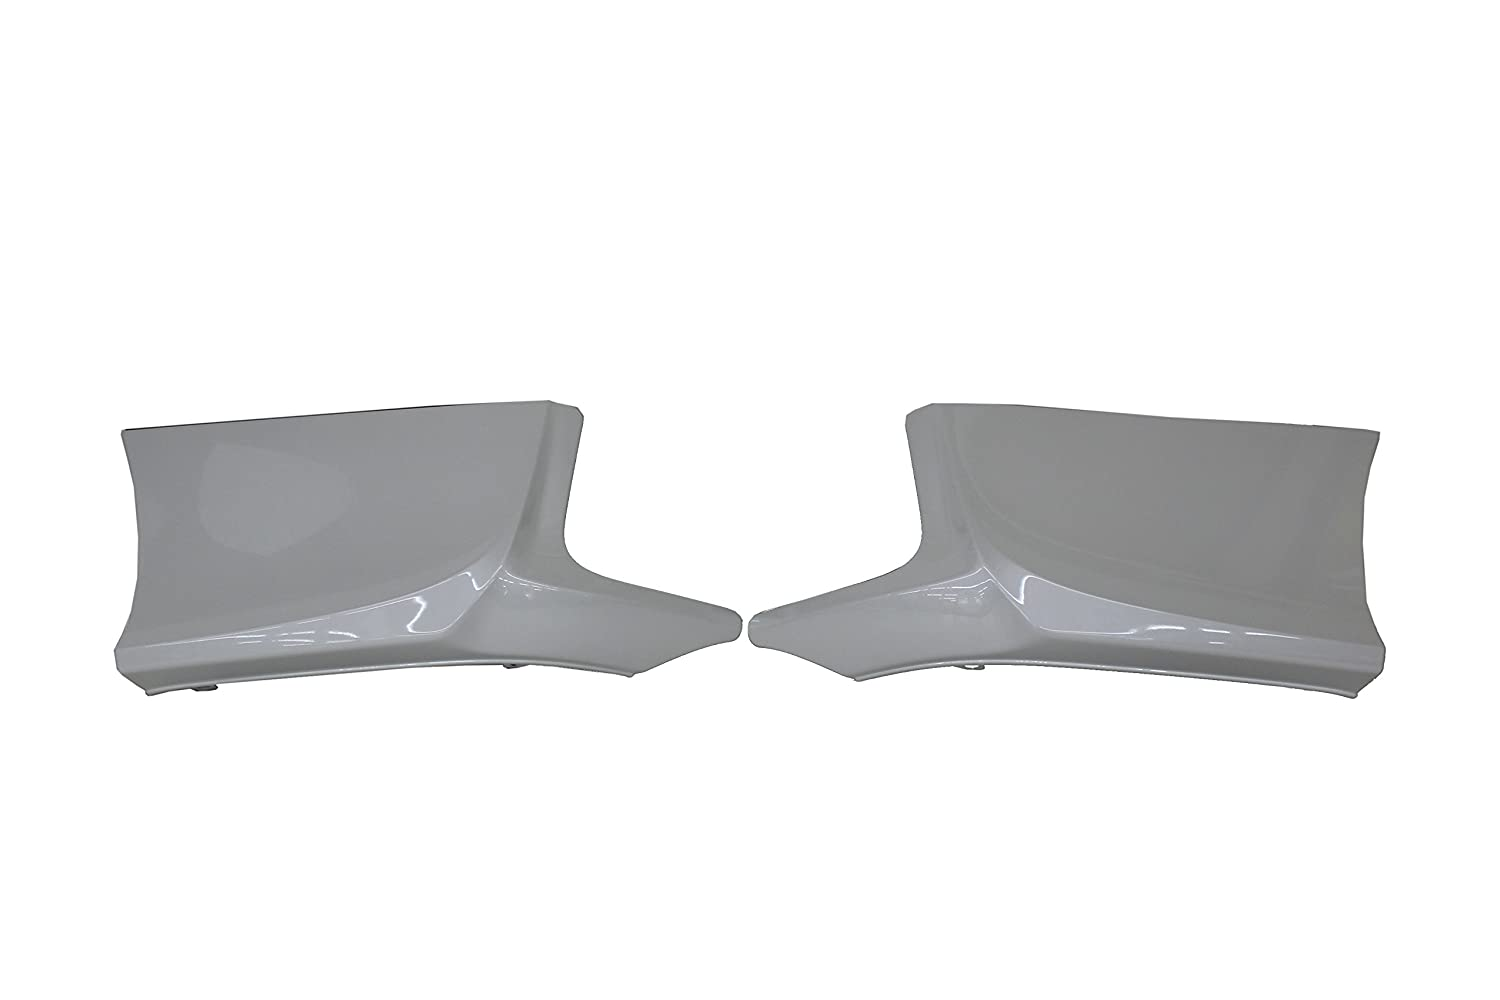 Honda Genuine Accessories 08F03 T3L 130 White Orchid Pearl Rear Underbody Spoiler for Select Accord Models